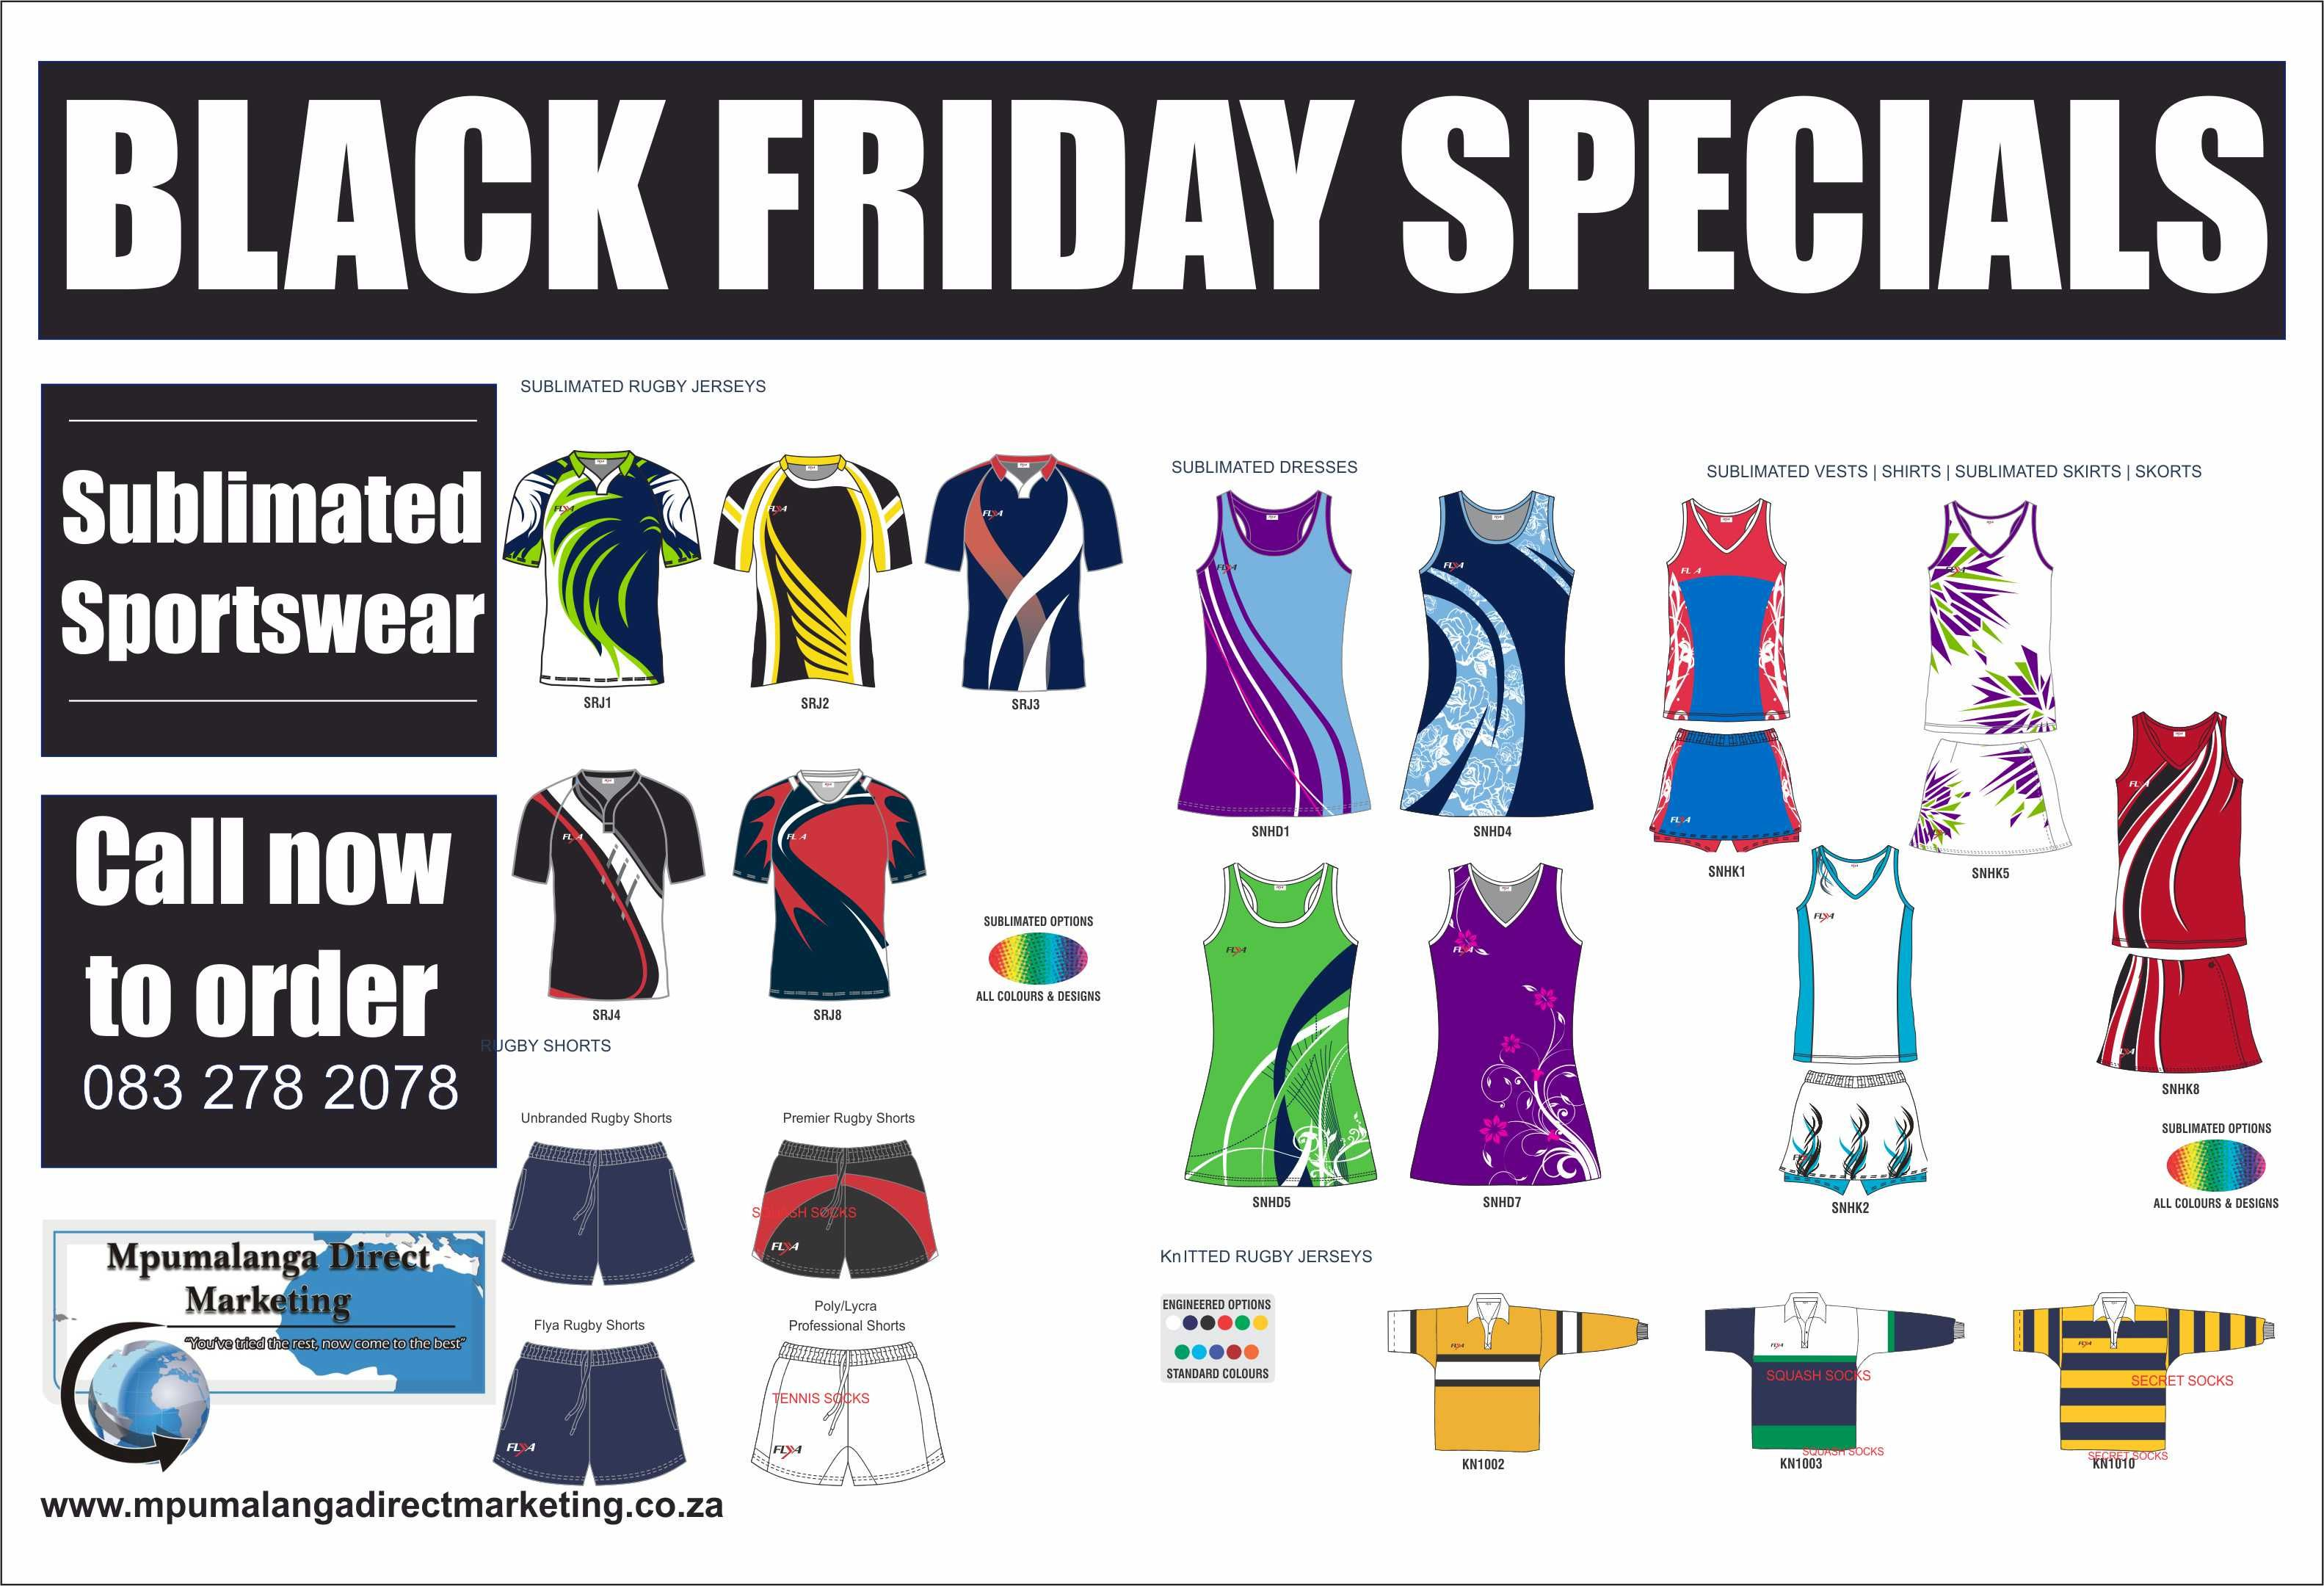 Black Friday Special Offers In 2020 Black Friday Special Black Friday Black Friday Specials